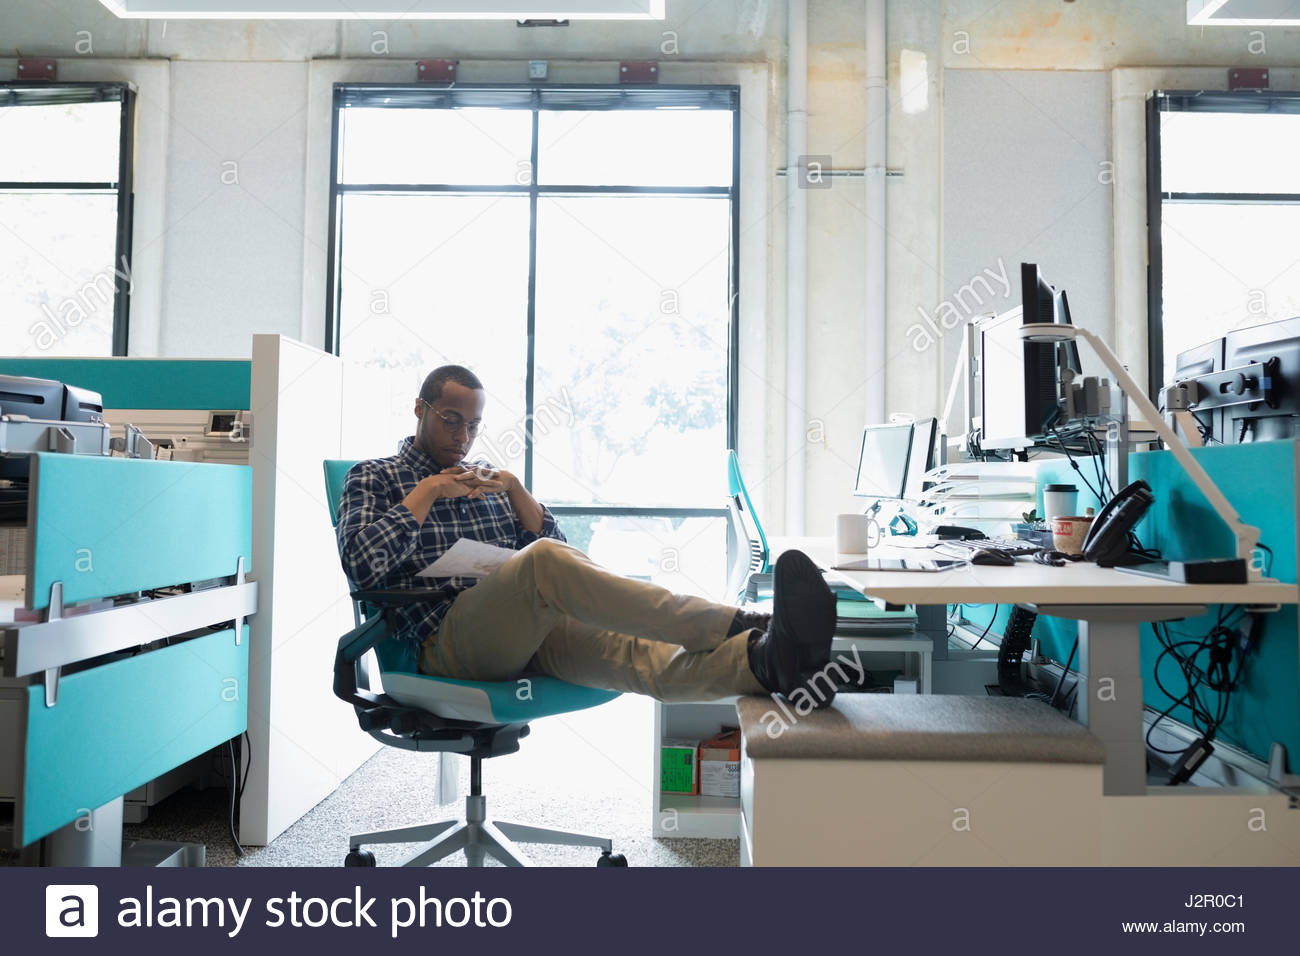 African American businessman working with feet up at office desk - Stock Image